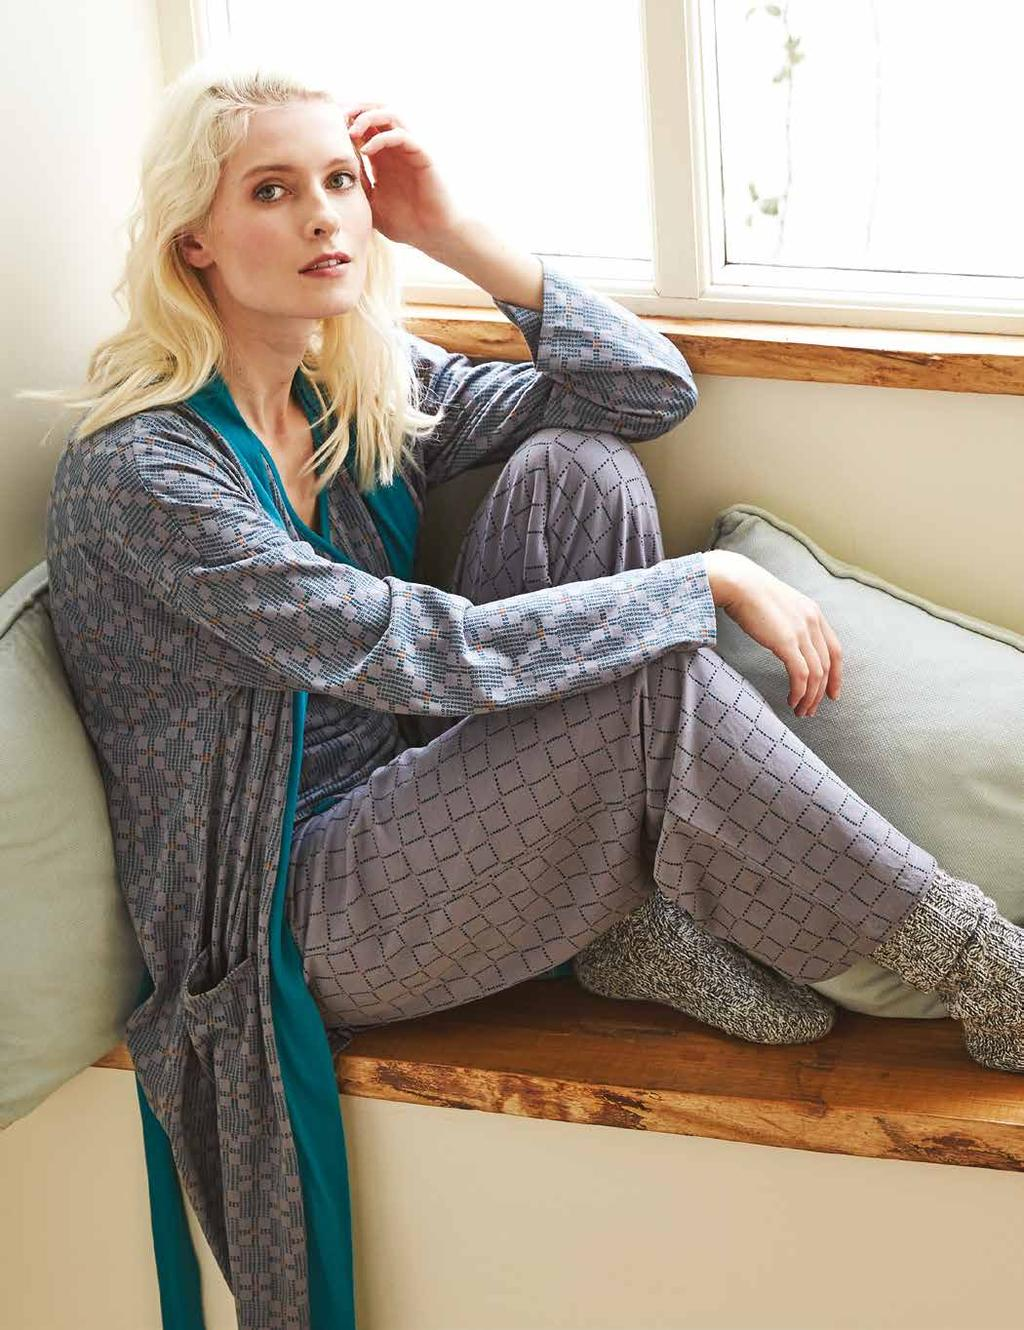 Printed Dressing Gown NA9505 Organic Brushed Cotton Jersey Silver Sizes S, M, L 52 Tairu Pyjama Bottoms NB9504 Organic Brushed Cotton Jersey Silver Sizes S, M, L 35 How to Order www.nomadsclothing.